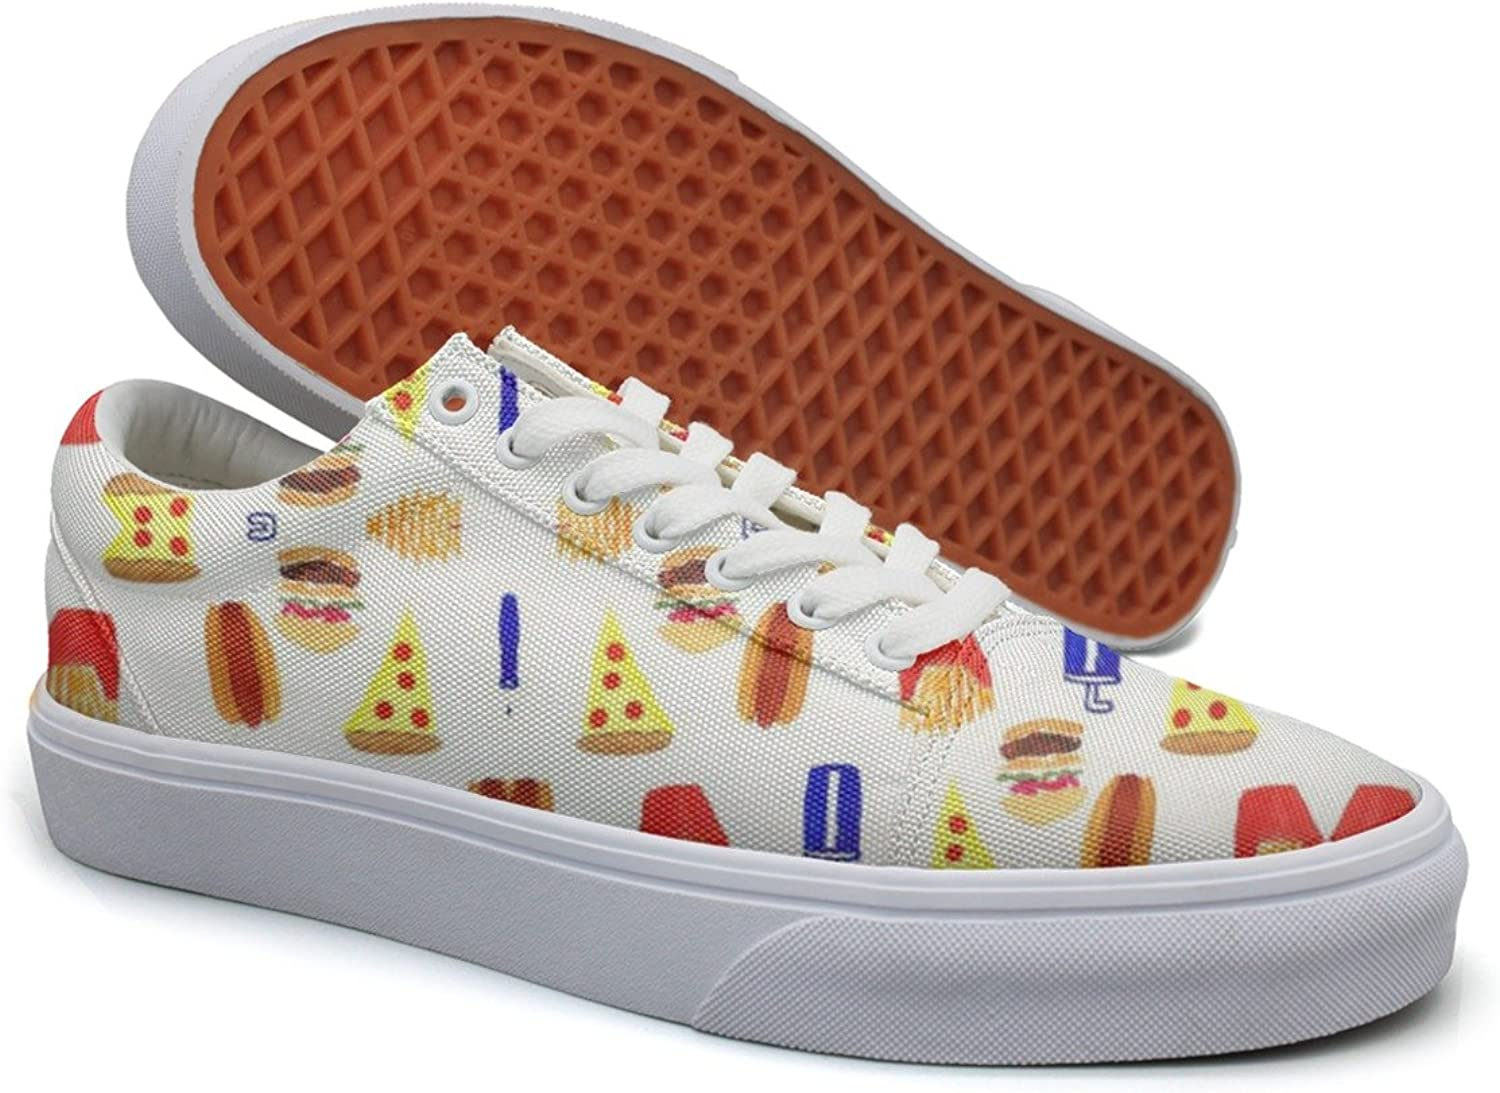 Ouxioaz Womens Canvas Casual shoes Junk Food Hot Dog Pizza Hamburger Lace-up Running shoes